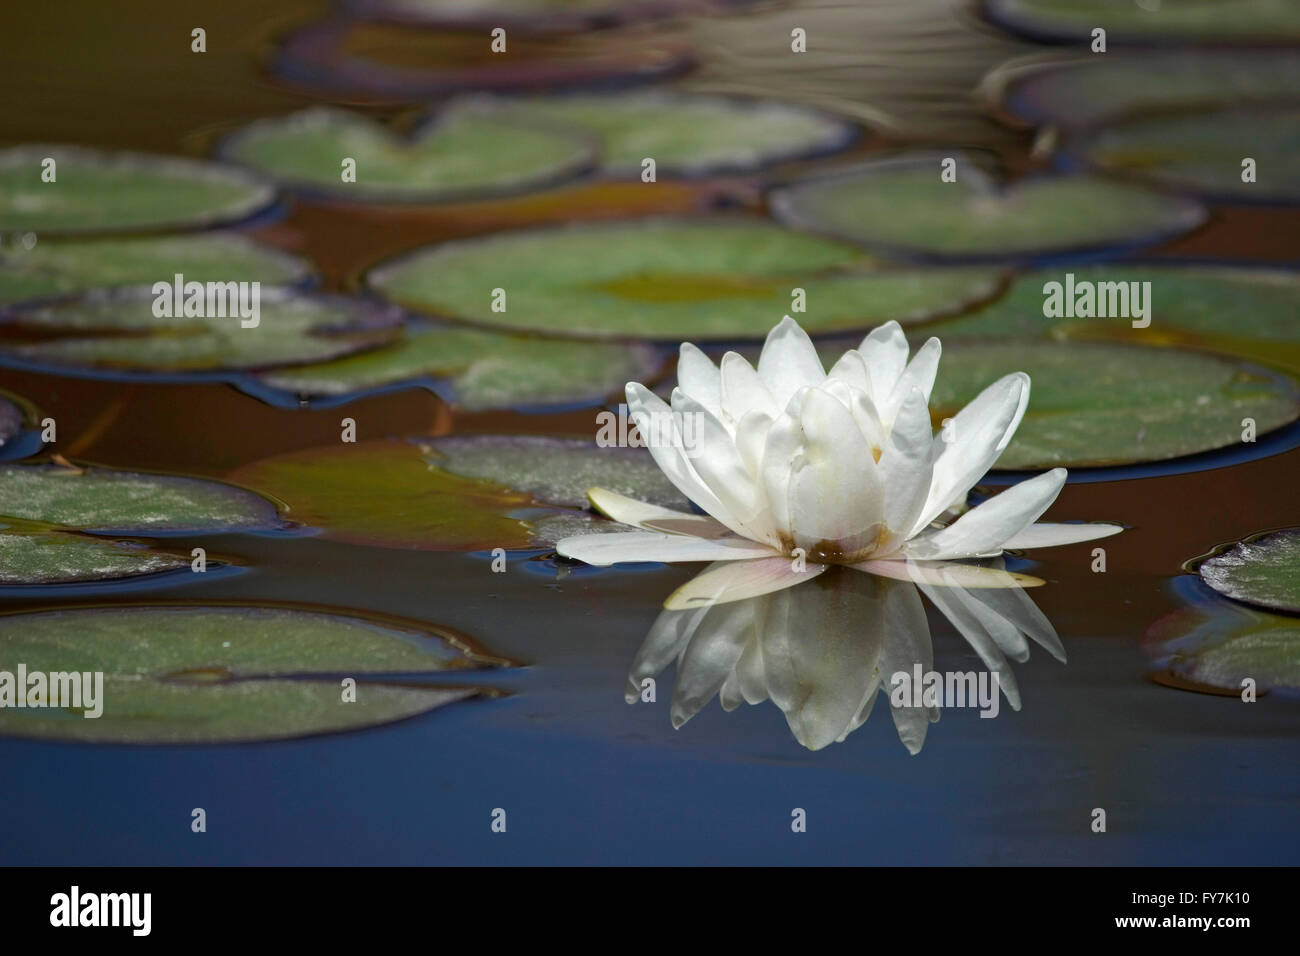 Closeup of a fresh floating white waterlily herb plant, reflected on water surrounded by lilly pads (leaves) & - Stock Image